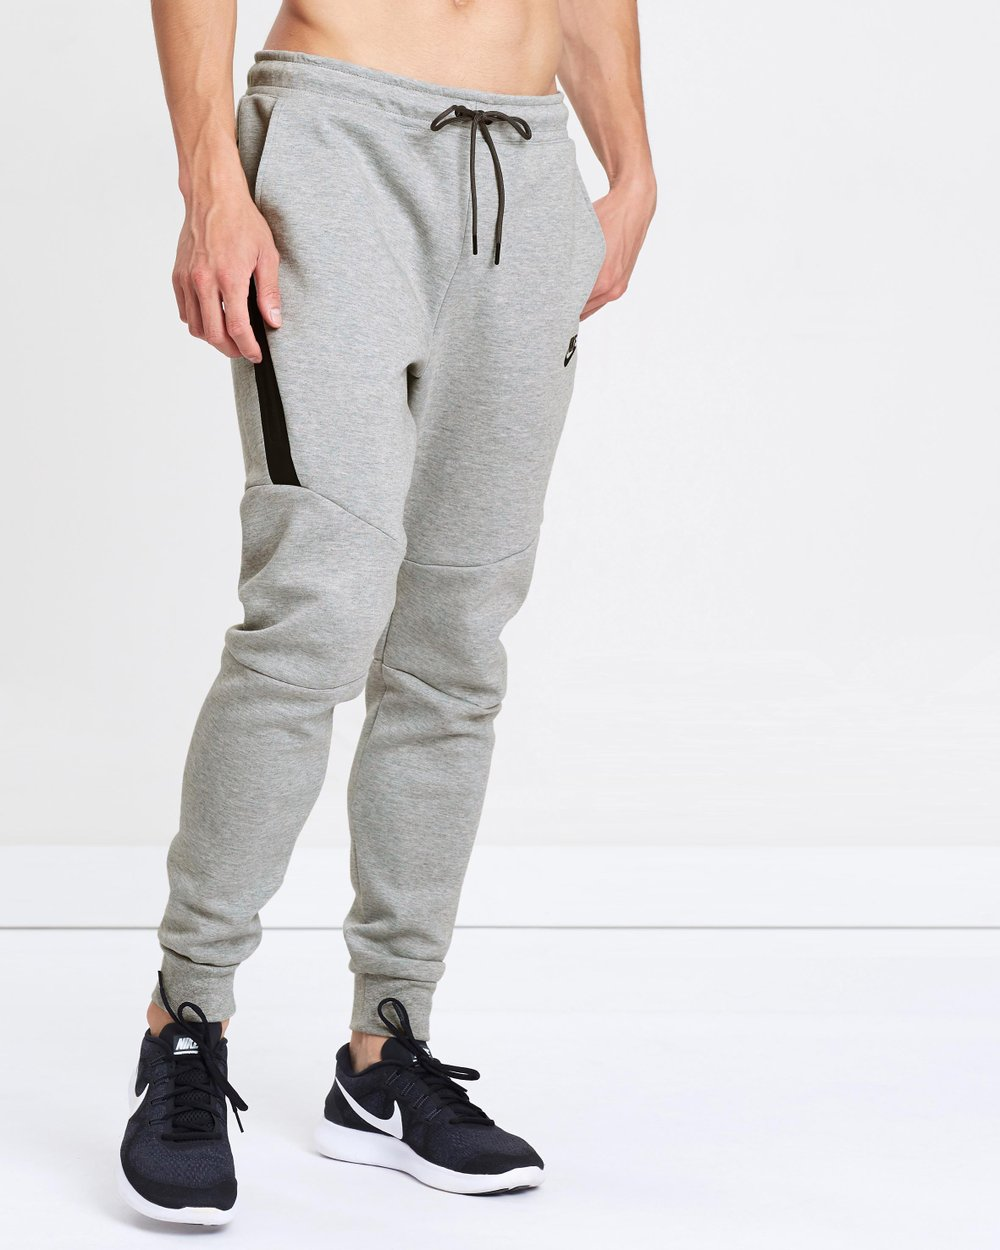 5ce7a073cabbfc Tech Fleece Jogger Pants by Nike Online